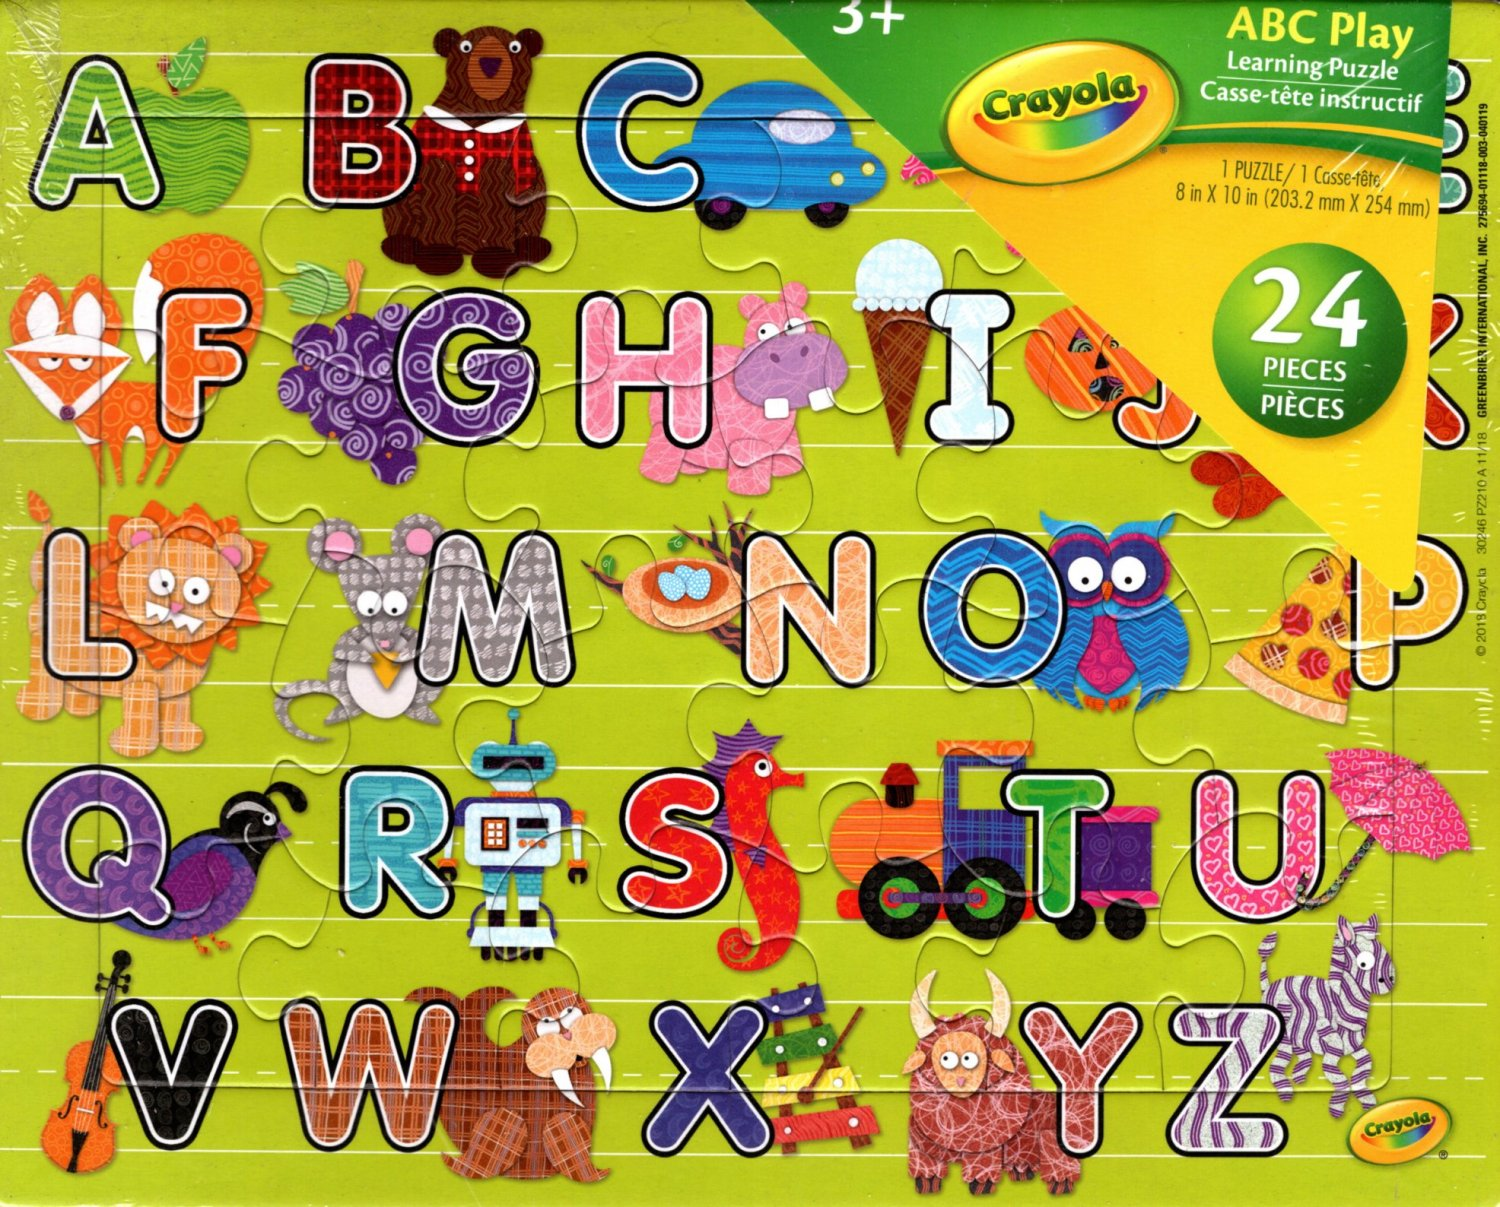 Crayola ABC Play Learning Puzzle - 24 Pieces Jigsaw Puzzle